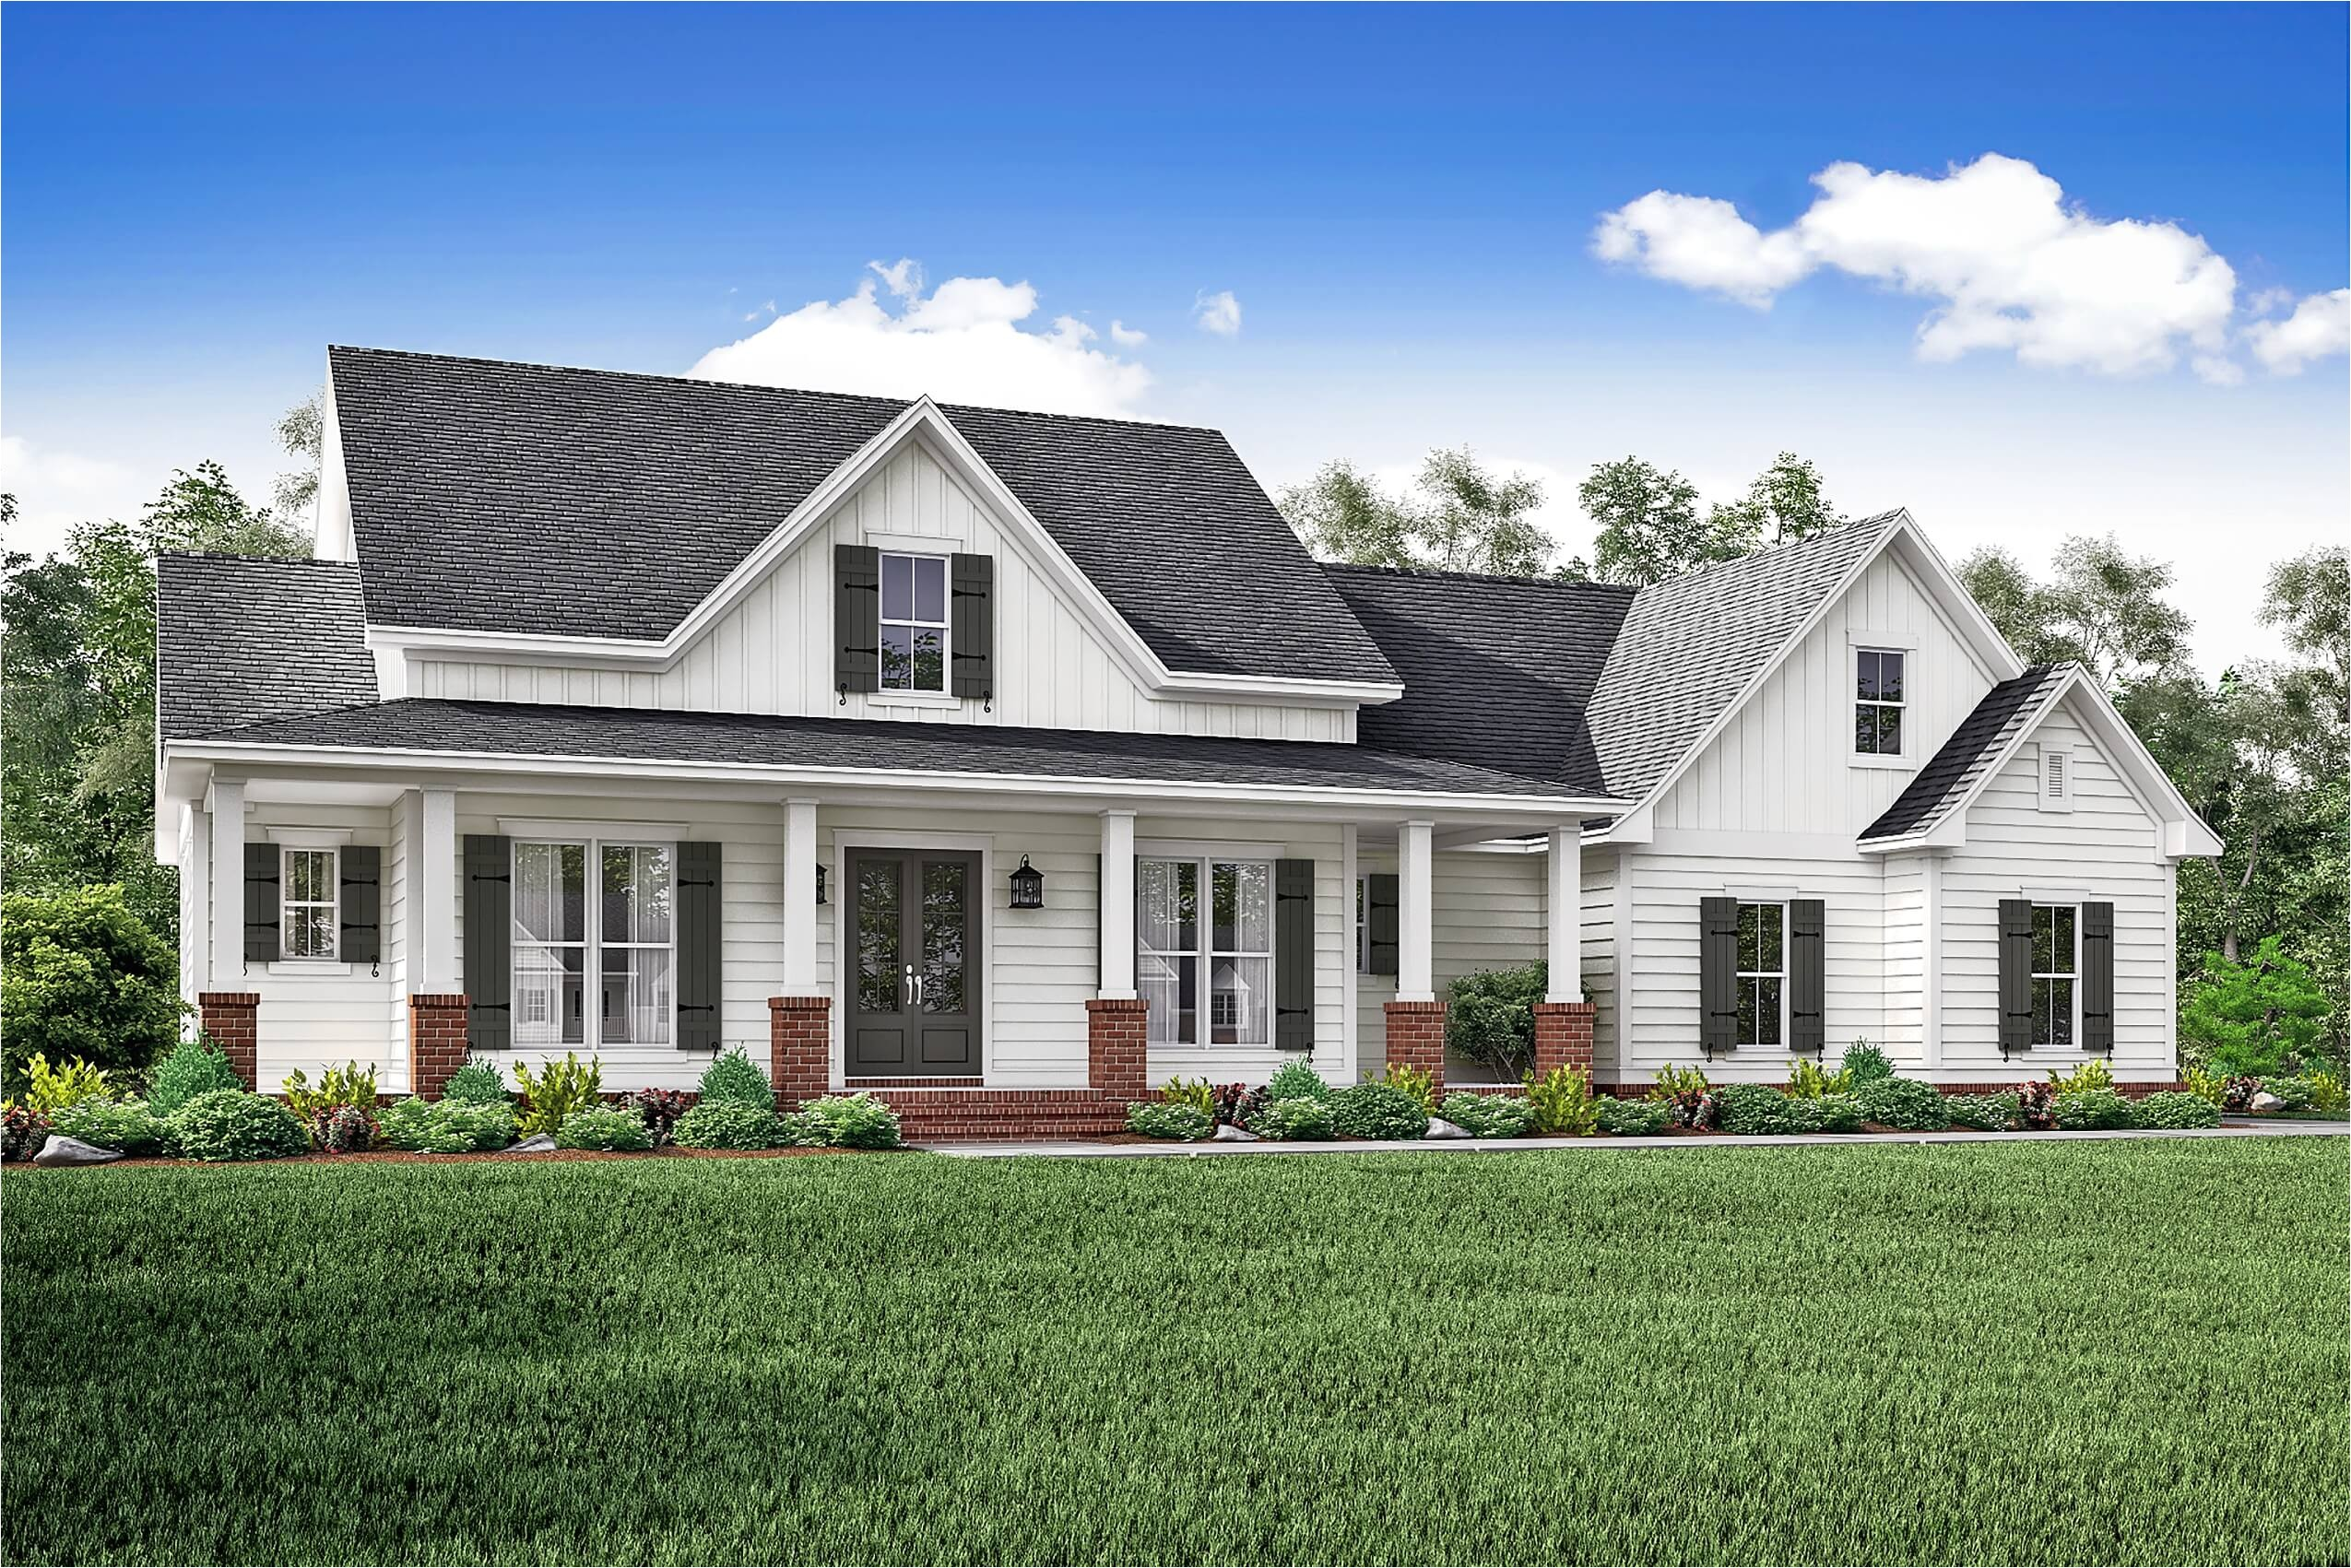 House Plans for Farmhouses 3 Bedrm 2466 Sq Ft Country House Plan 142 1166